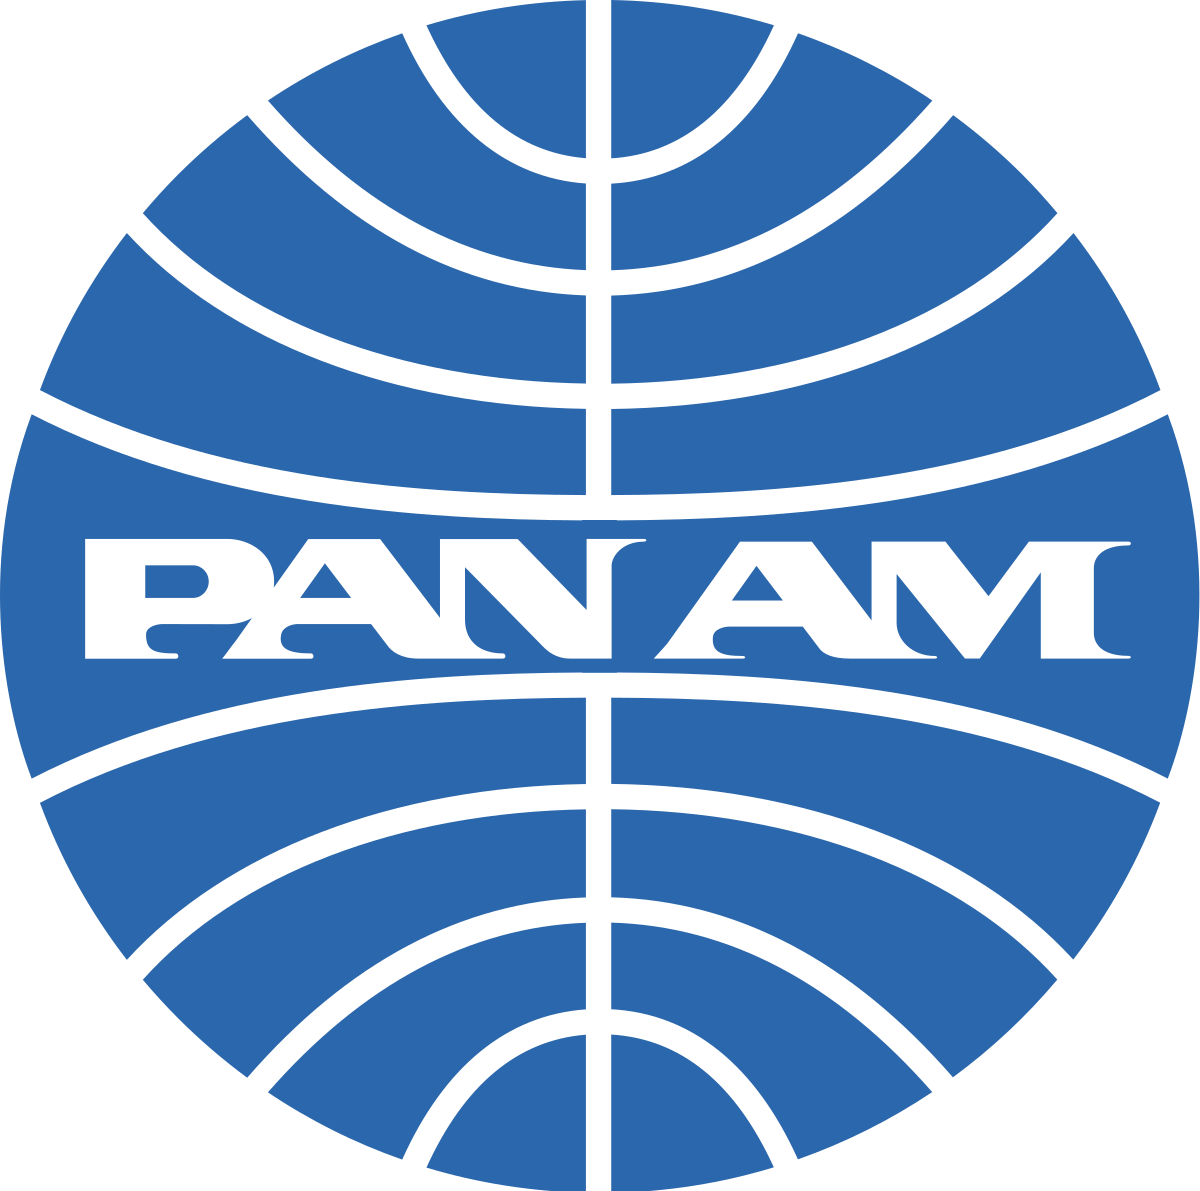 Pan American Airways' blue globe logo